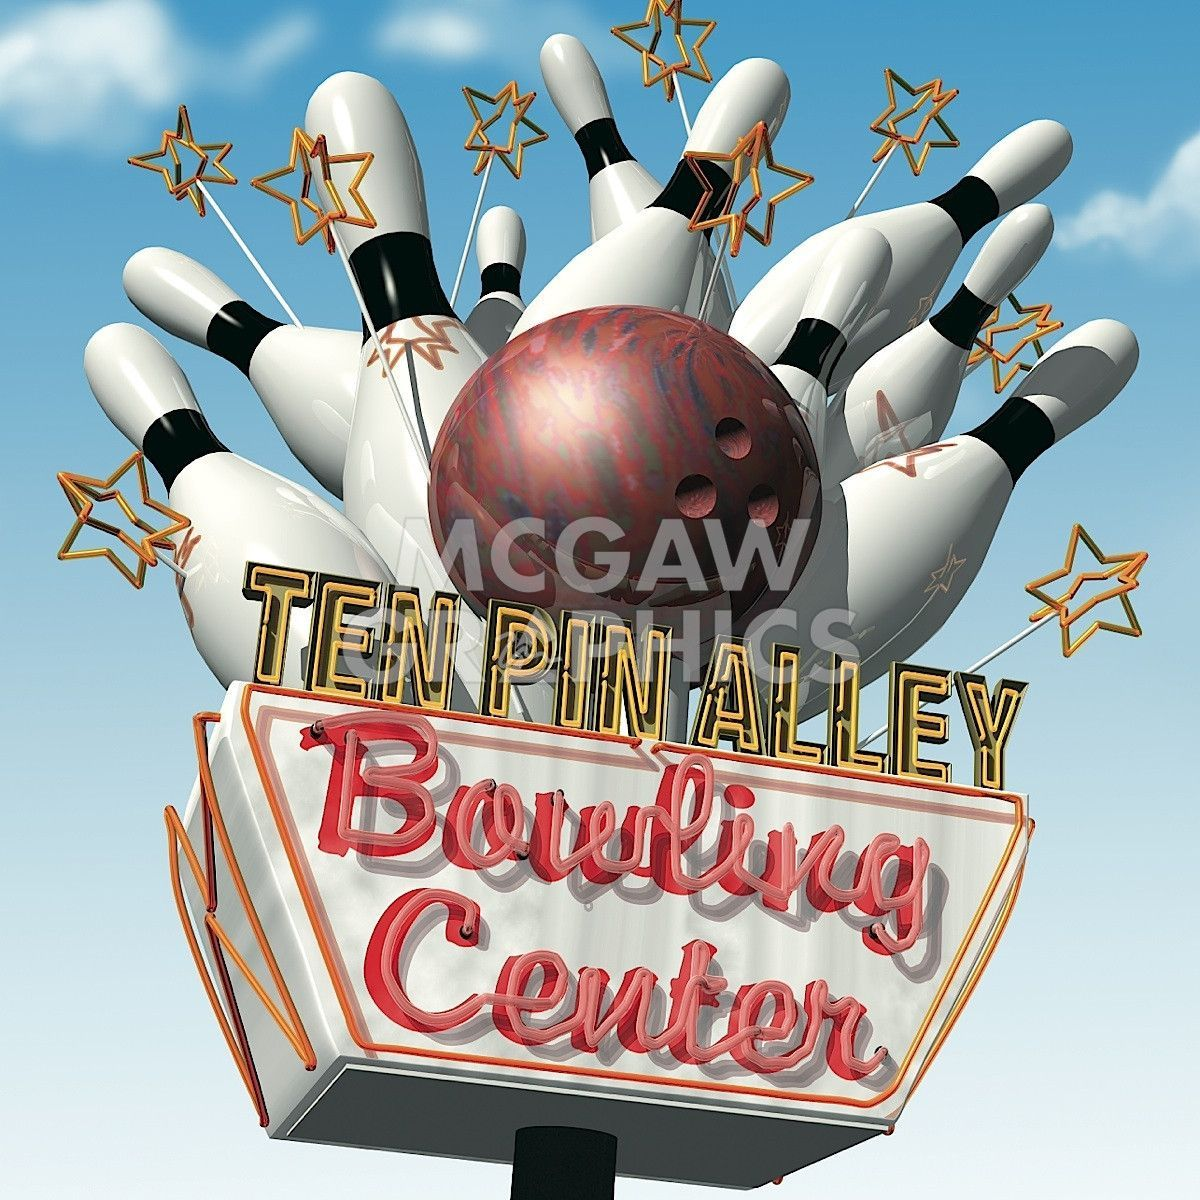 Ten Pin Alley Bowling Center Old Neon Signs Neon Signs Vintage Neon Signs